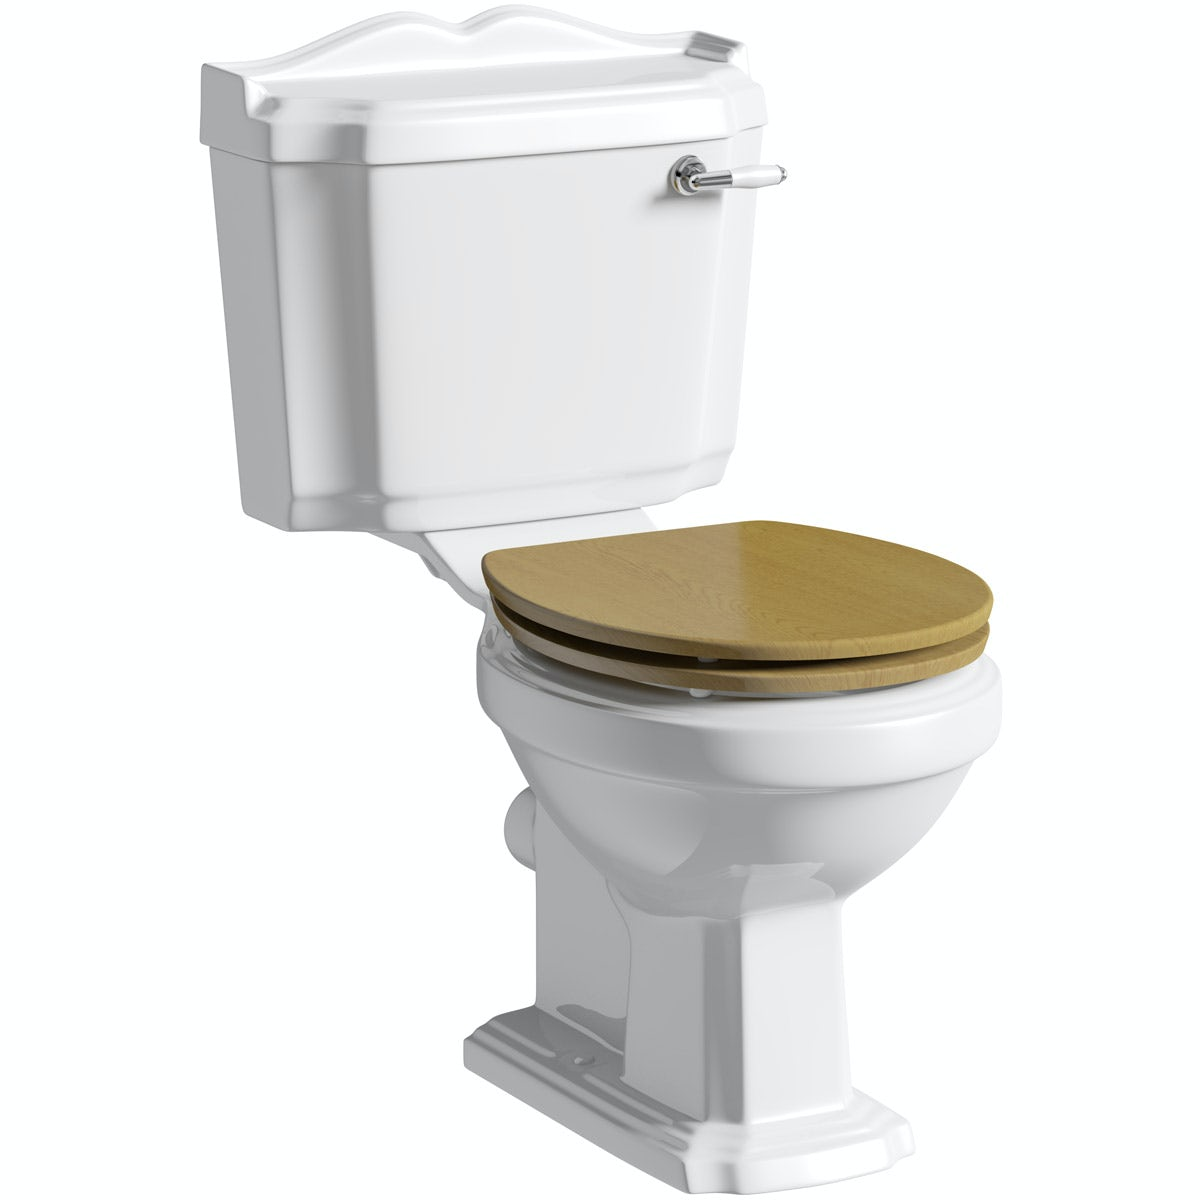 The Bath Co. Winchester close coupled toilet with solid oak seat with pan connector